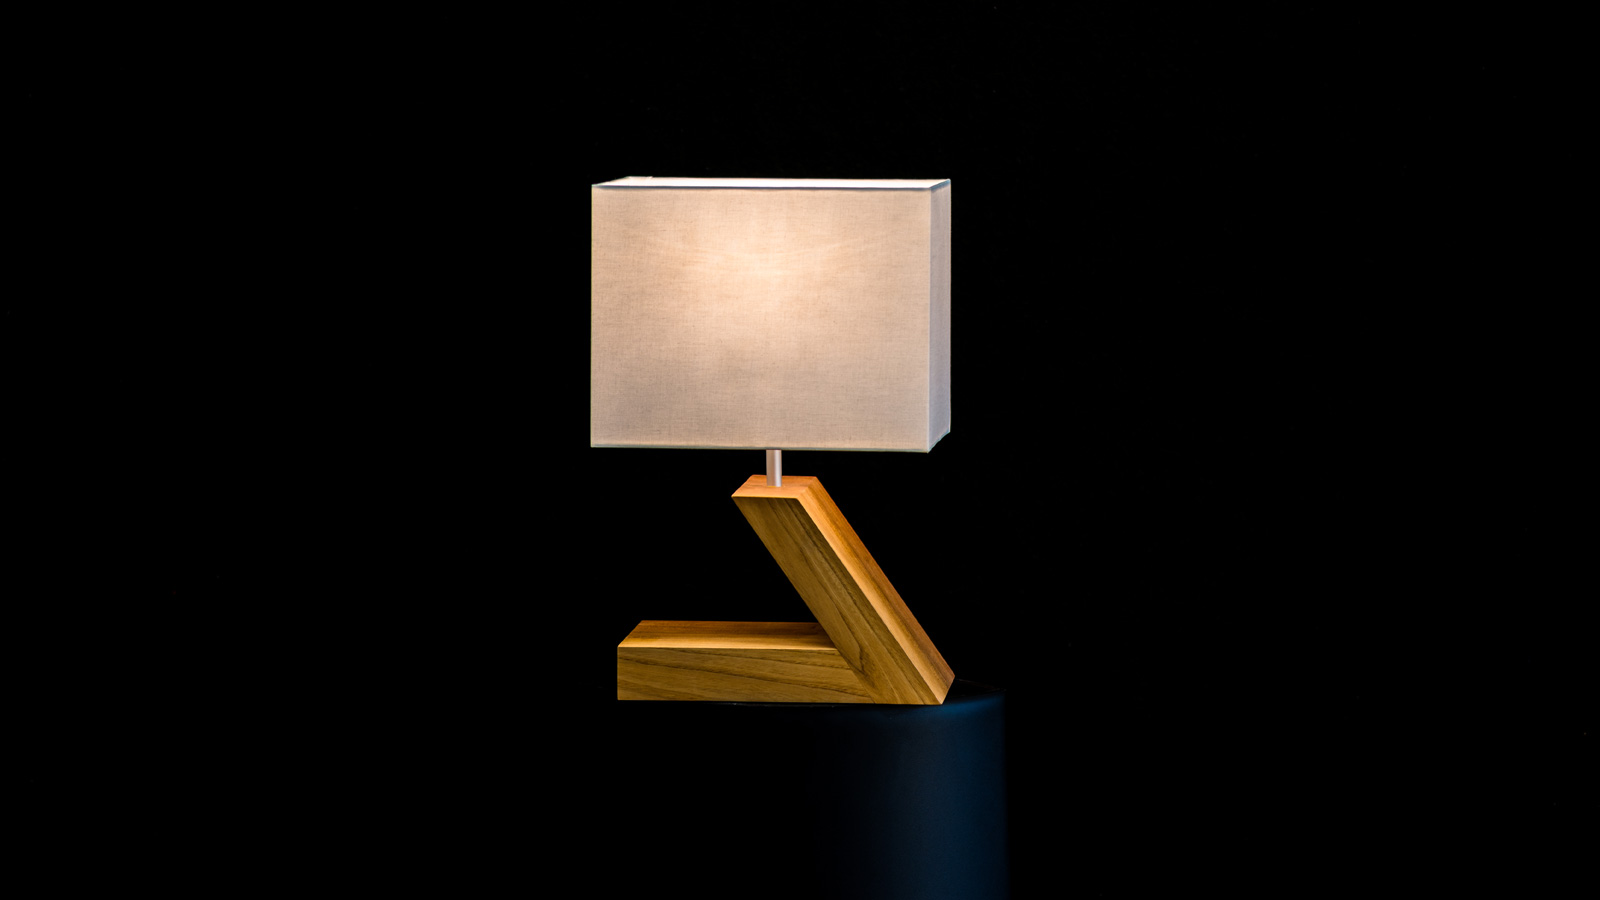 Design light Fanger Design, Swiss Made from Swiss wood